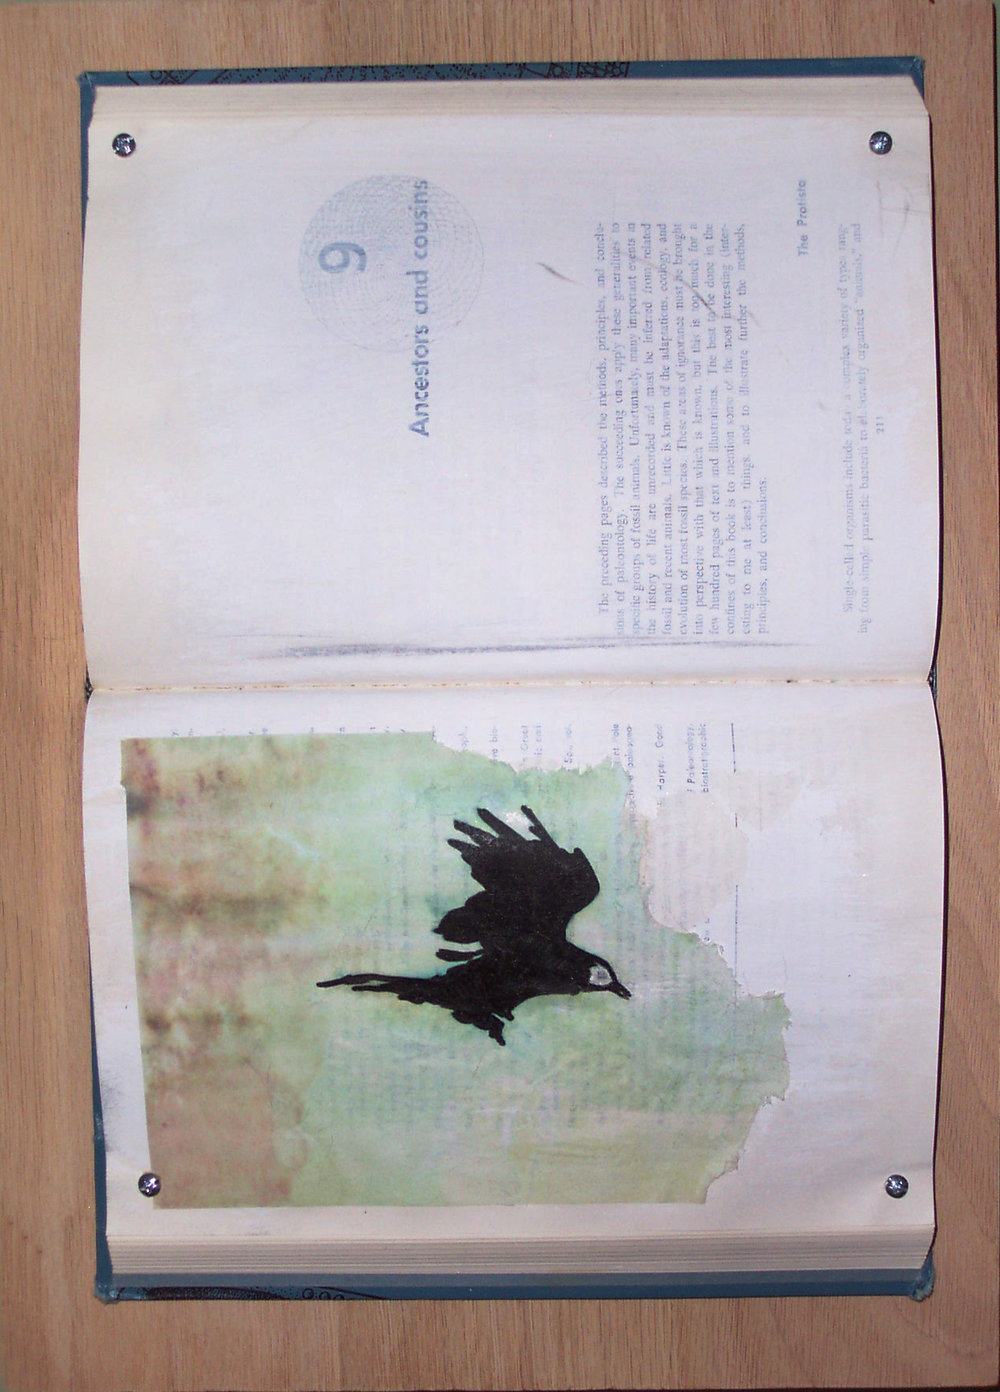 As the Crow Flies (pt. 2). 2008. Altered book, transfer print, ink, gesso, screws, oak. -